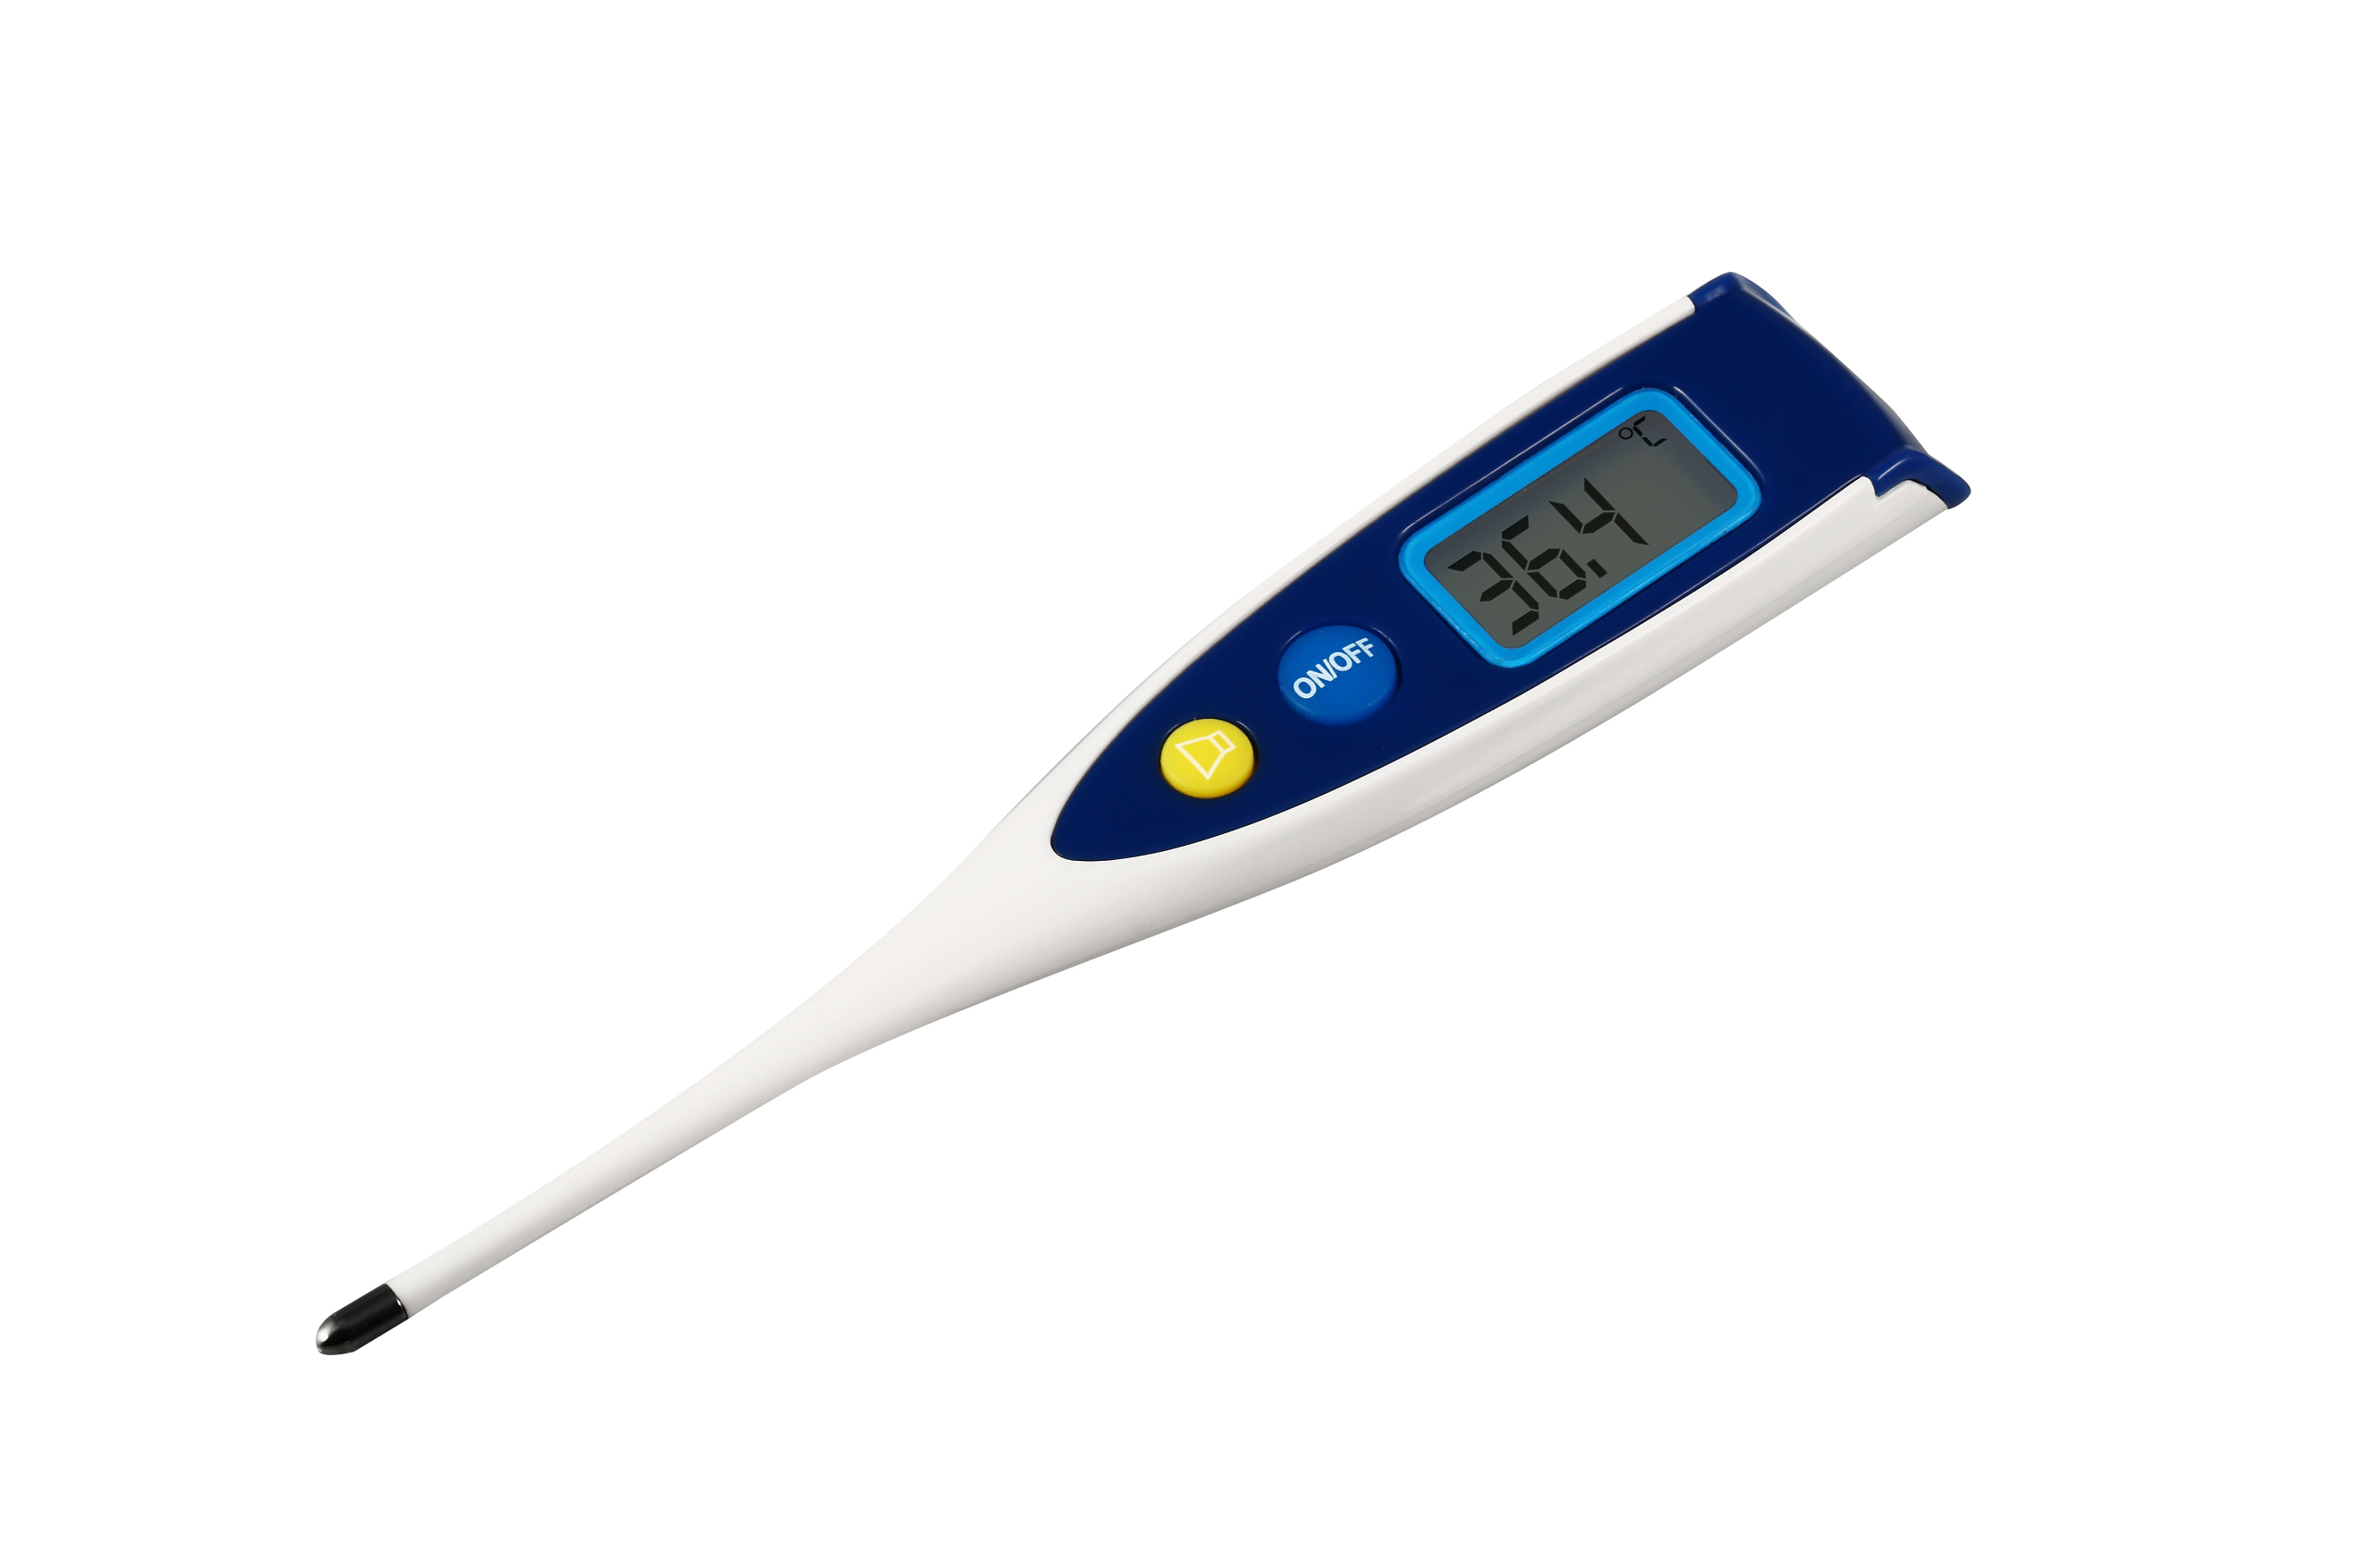 AT-T910 Pen Digital Thermometer with talking function